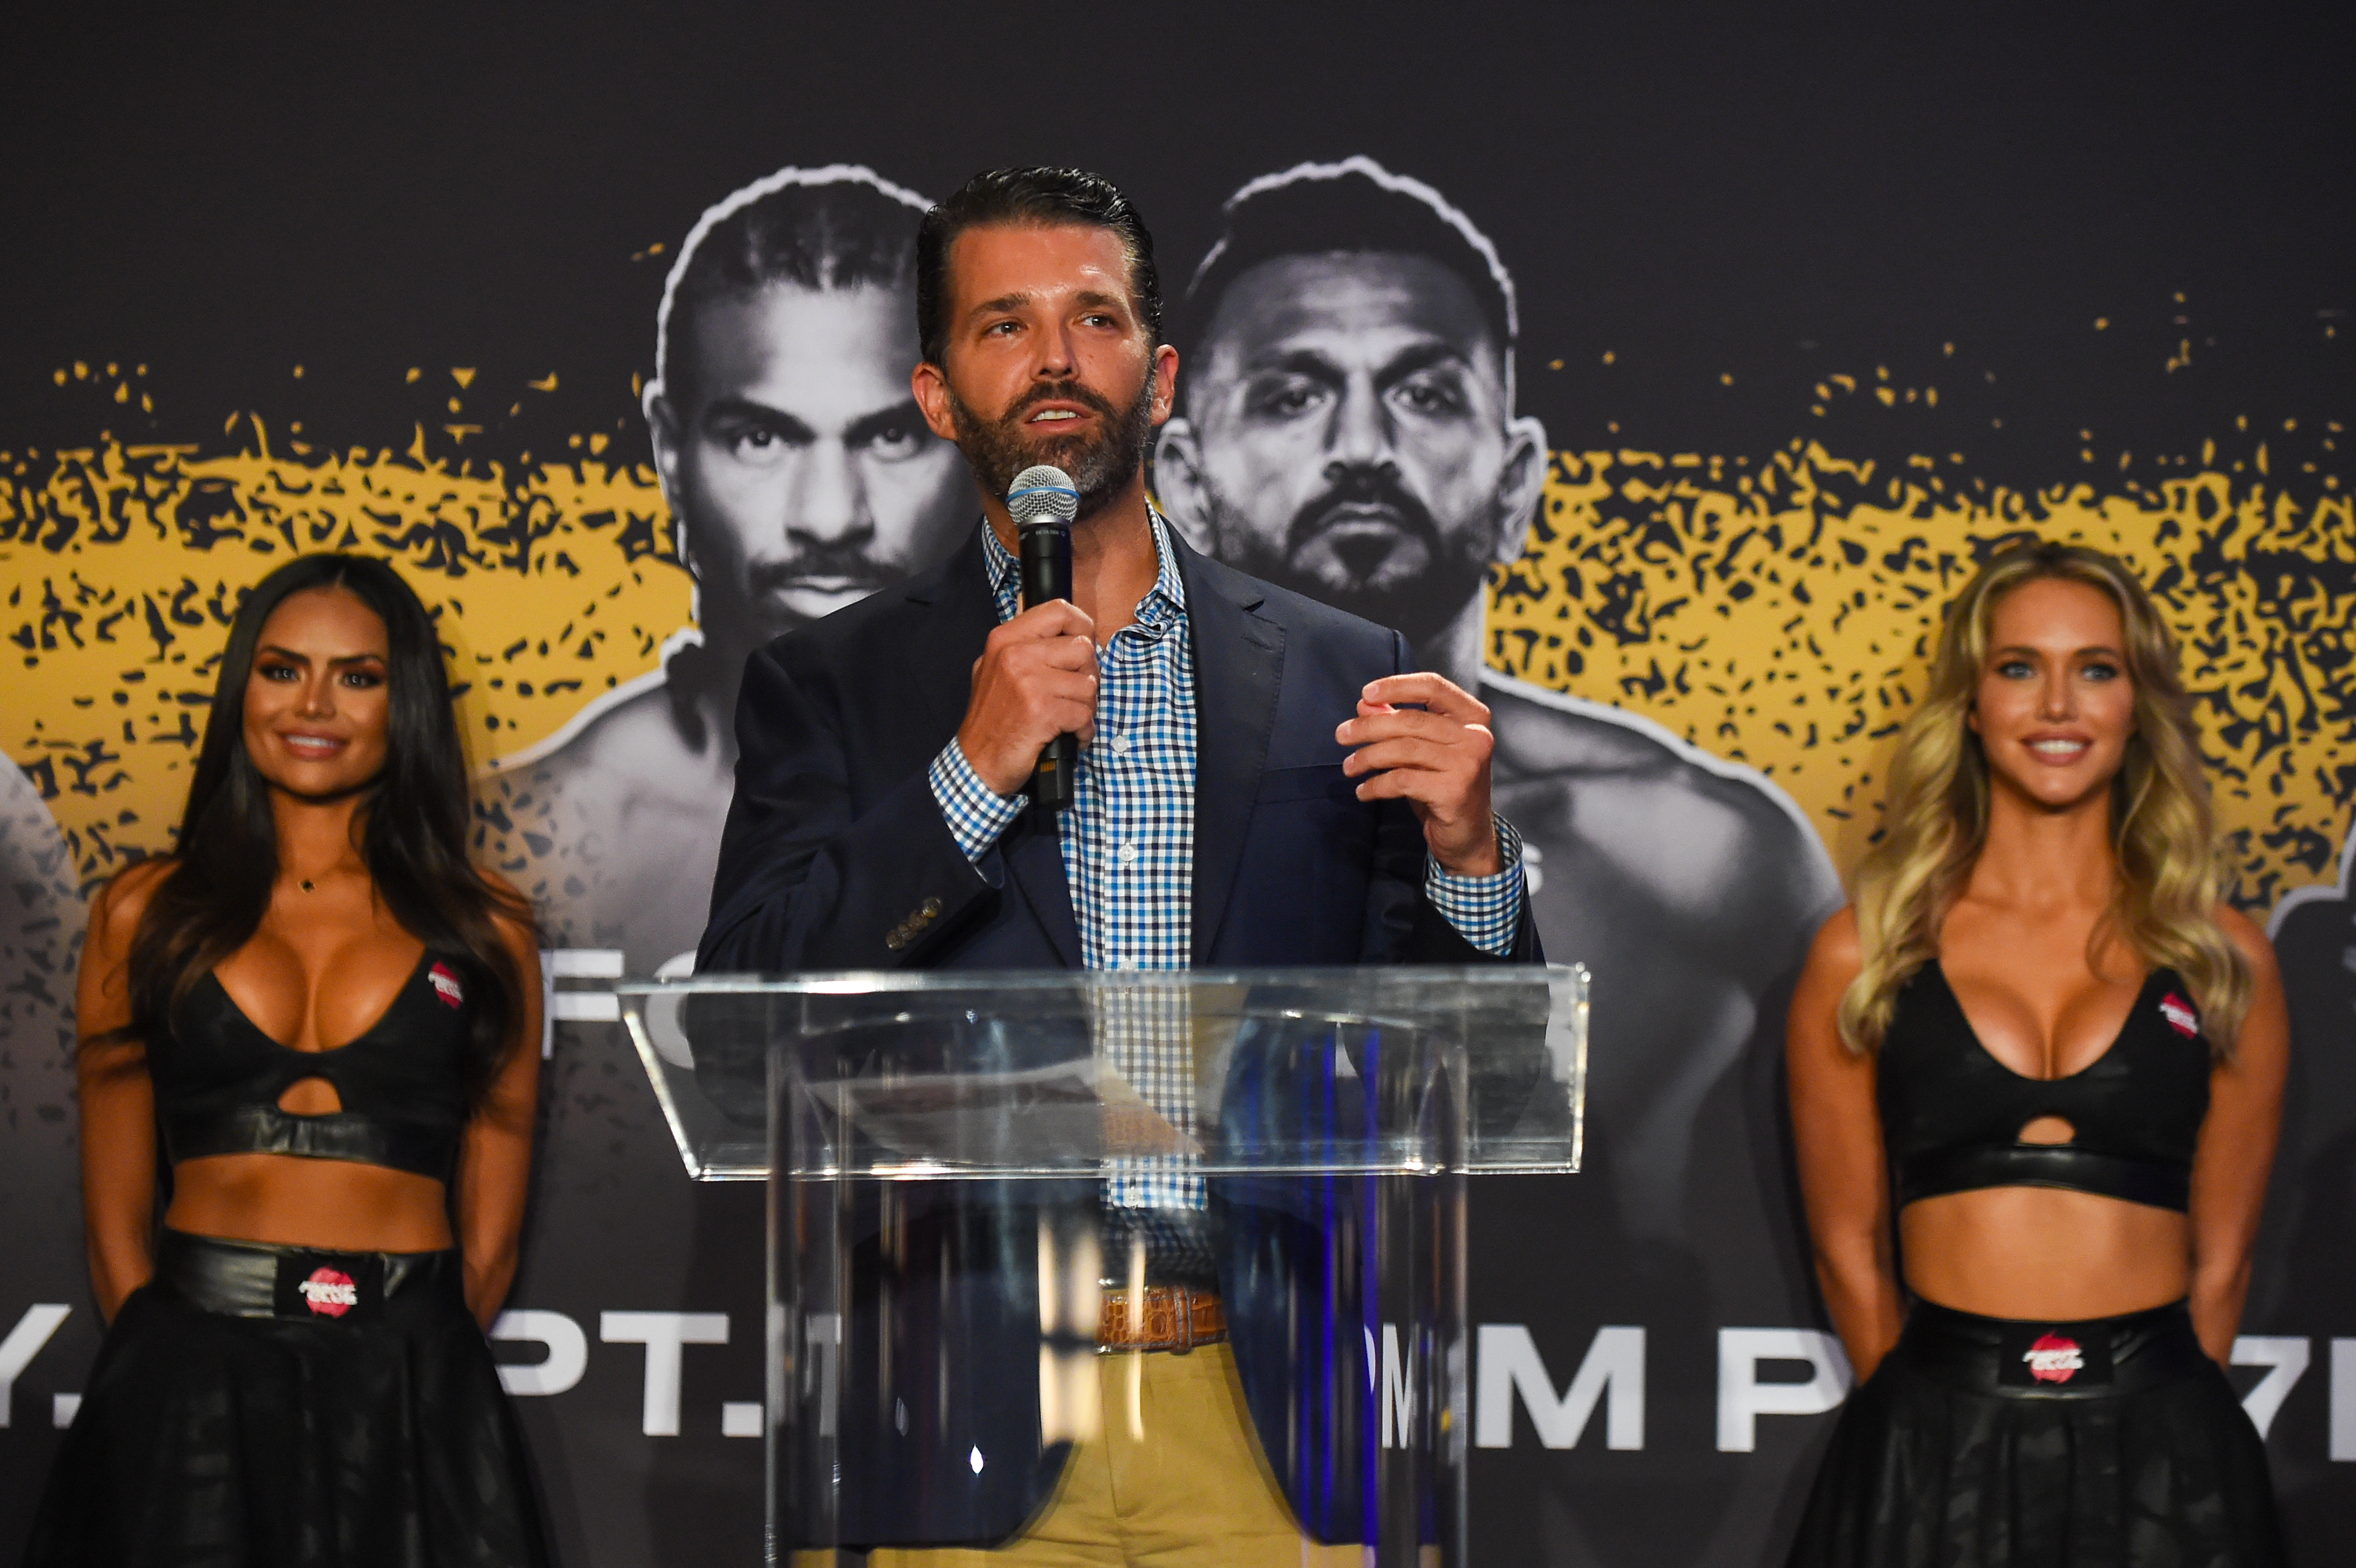 Donald Trump Jr. speaks during a press conference ahead of the heavyweight fight between Evander Holyfield and Vitor Belfort on September 11 at The Harbor Beach Marriott on September 9, 2021 in Fort Lauderdale, Florida. (Photo by Eric Espada/Getty Images)